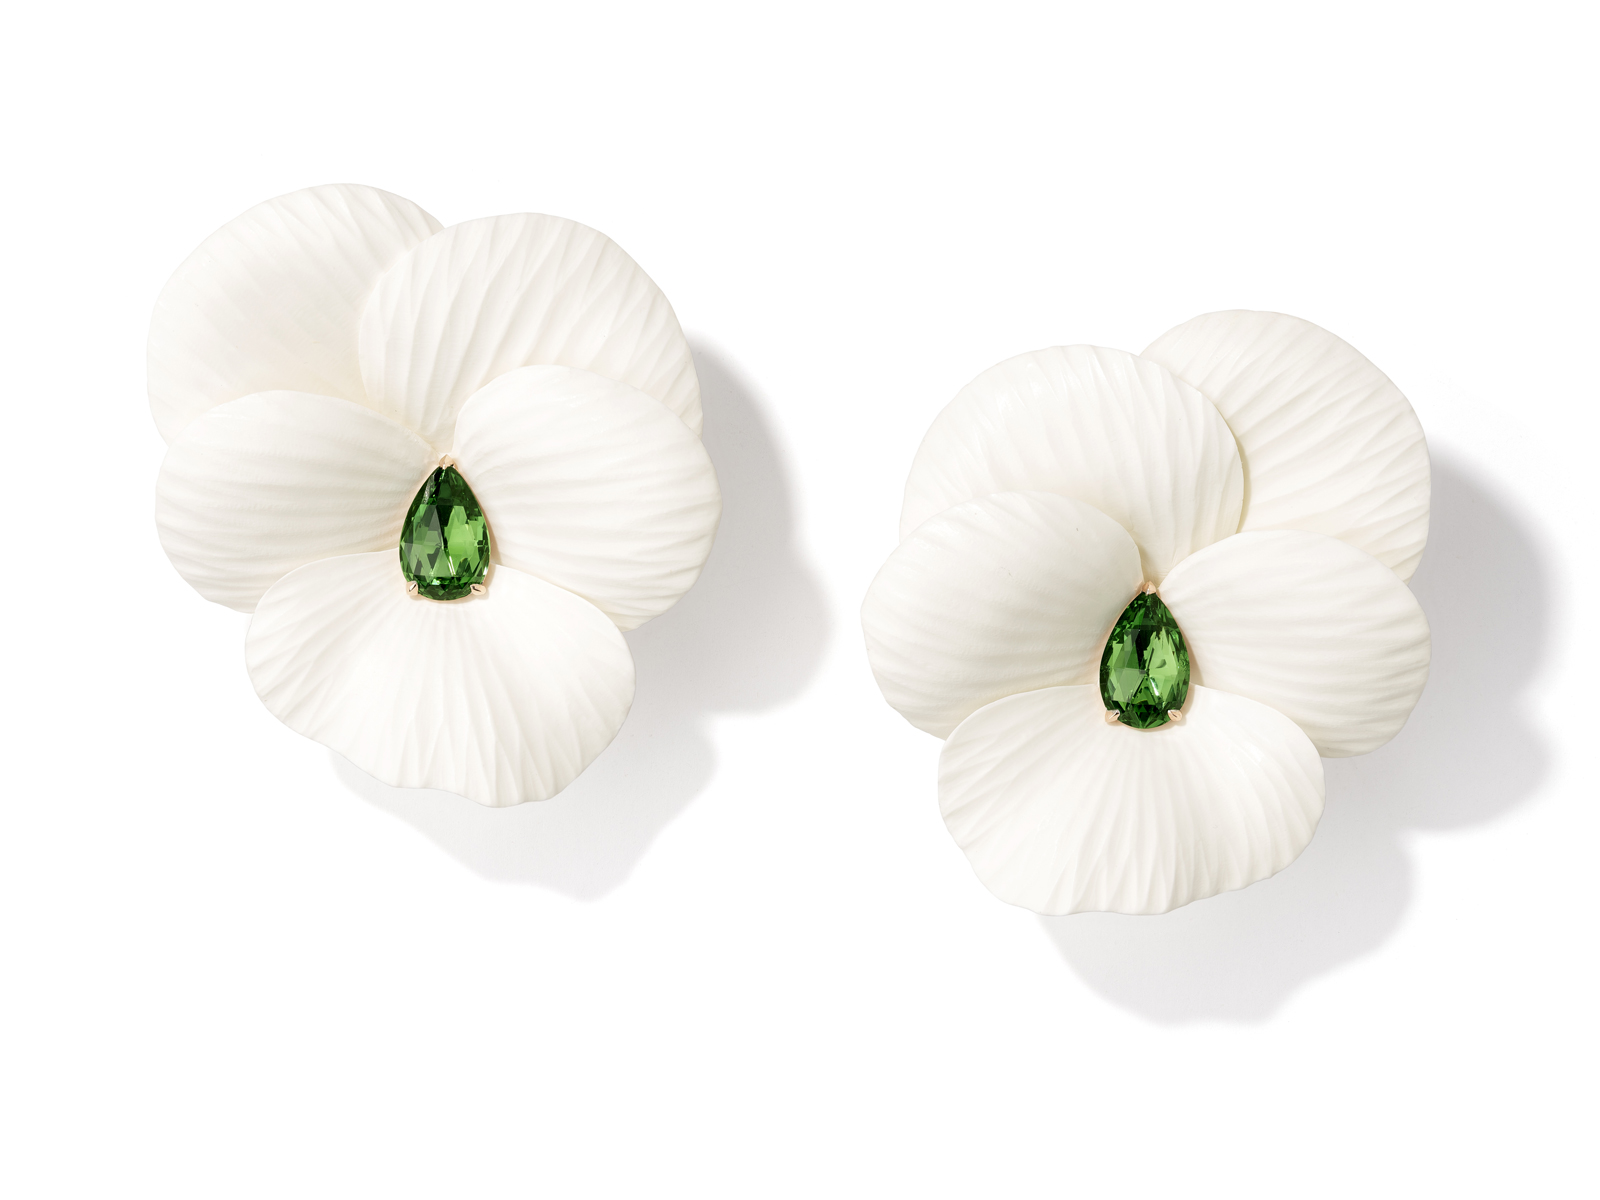 monaco-salons-art-pad-monaco-Hyceram-Tsavorite-Flower-Earrings-copy